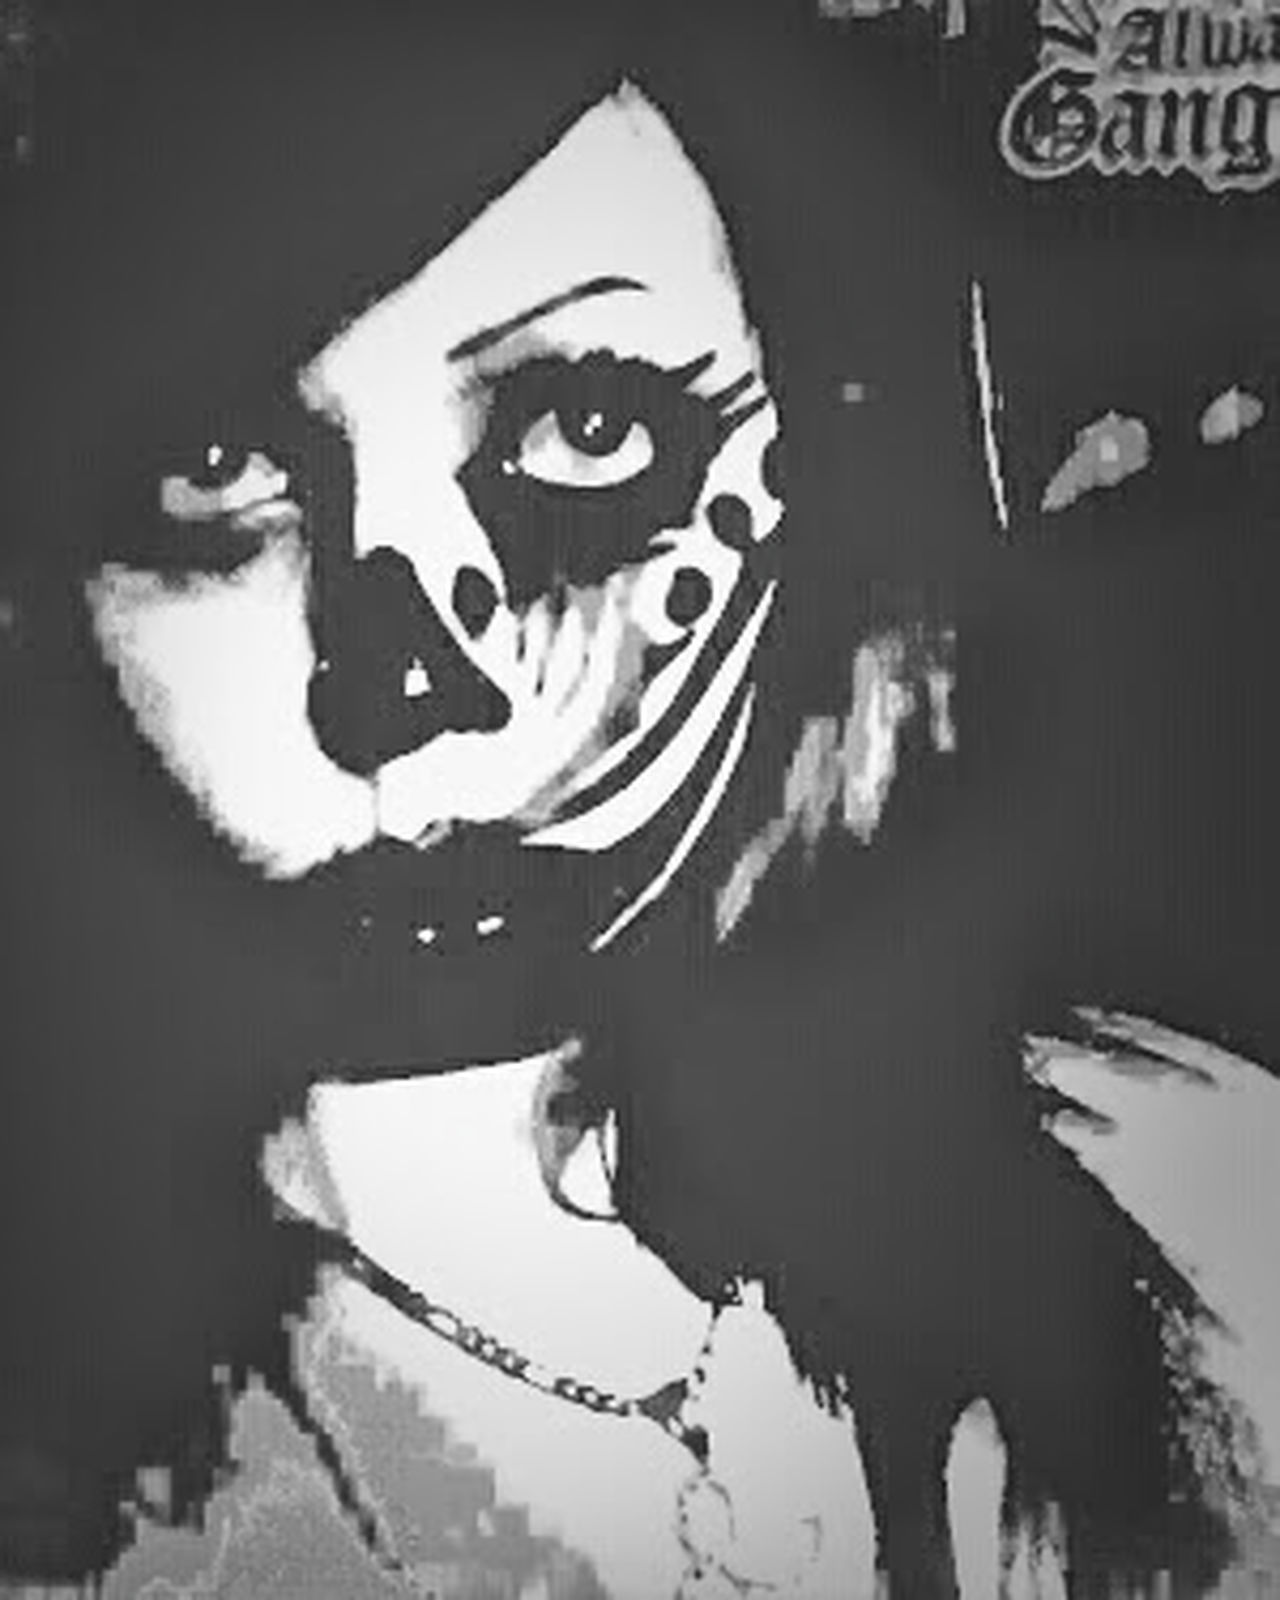 Me Juggalo Pride Juggalette Killer Clowns Cheese! Tucson Life Different Taking Photos Enjoying Life Hello World Picturing Individuality That's Me ExpressYourself People Of EyeEm Faces Of EyeEm Rugged Beauty Juggalolife Juggalofamily